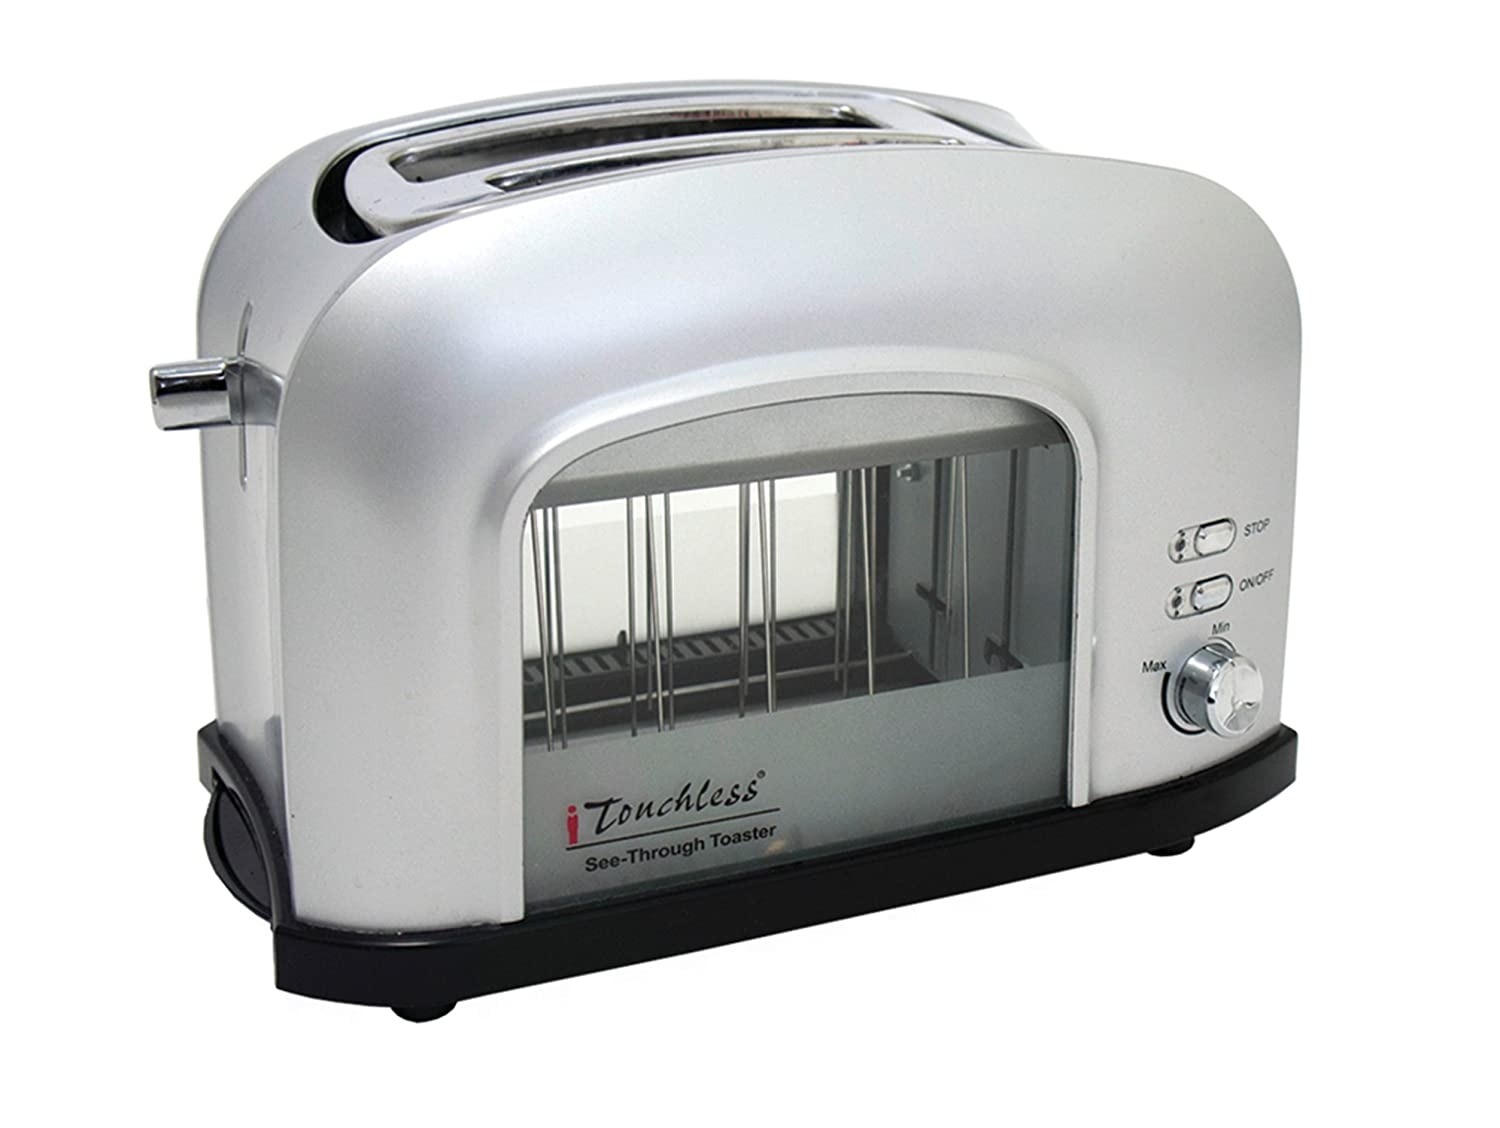 iTouchless SHT2GS 2-Slice See-Through Smart Toaster, Silver, 12.2L x 6.3W x 7.9H in. in,